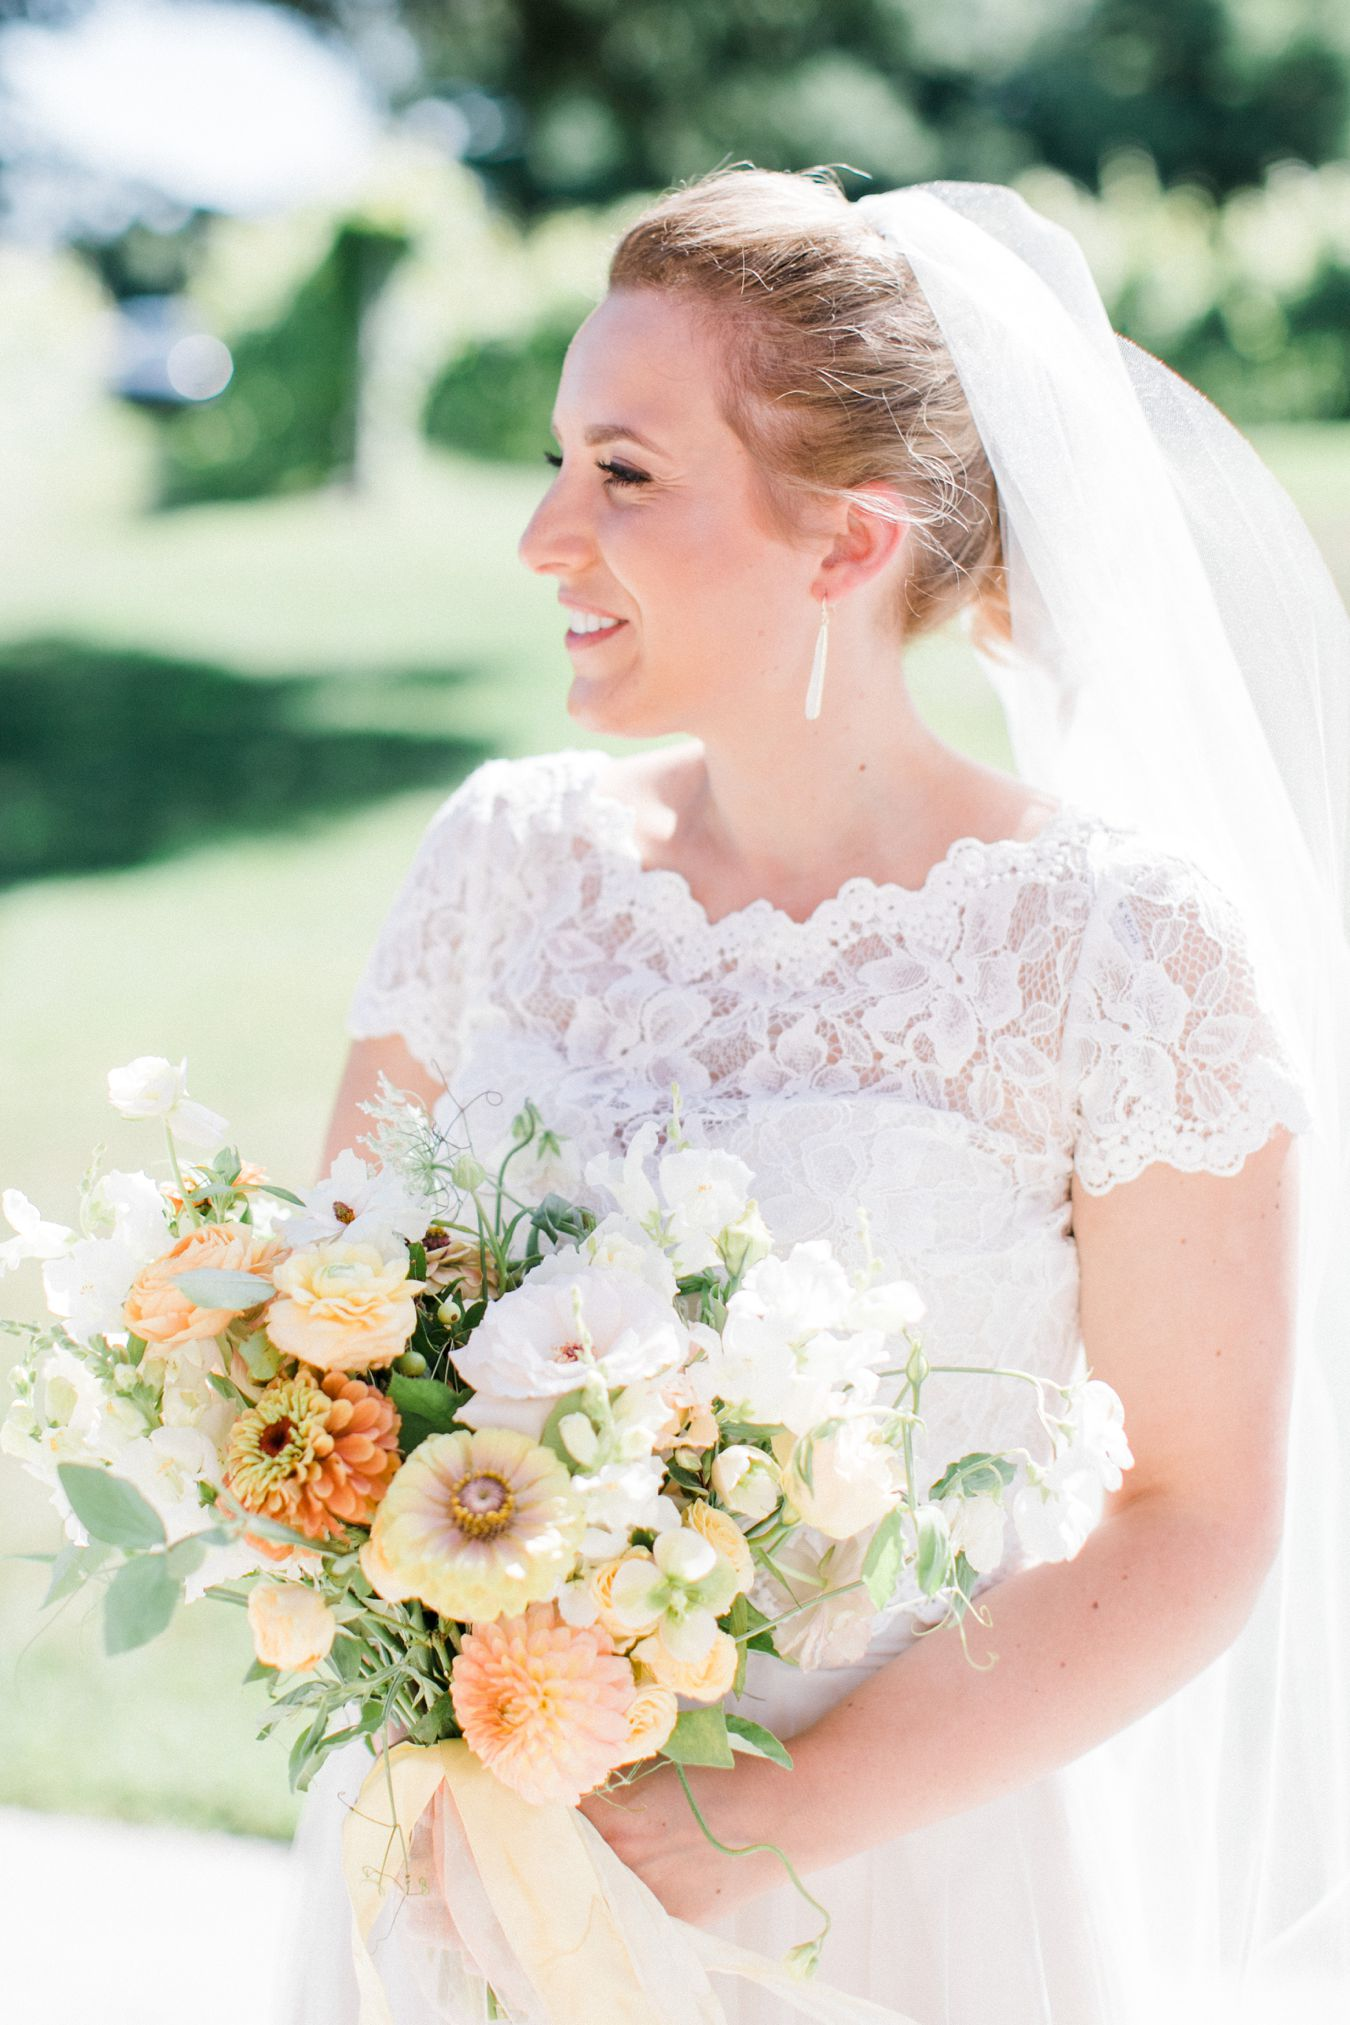 Northern Michigan Wedding Photographer | Cory Weber Photography